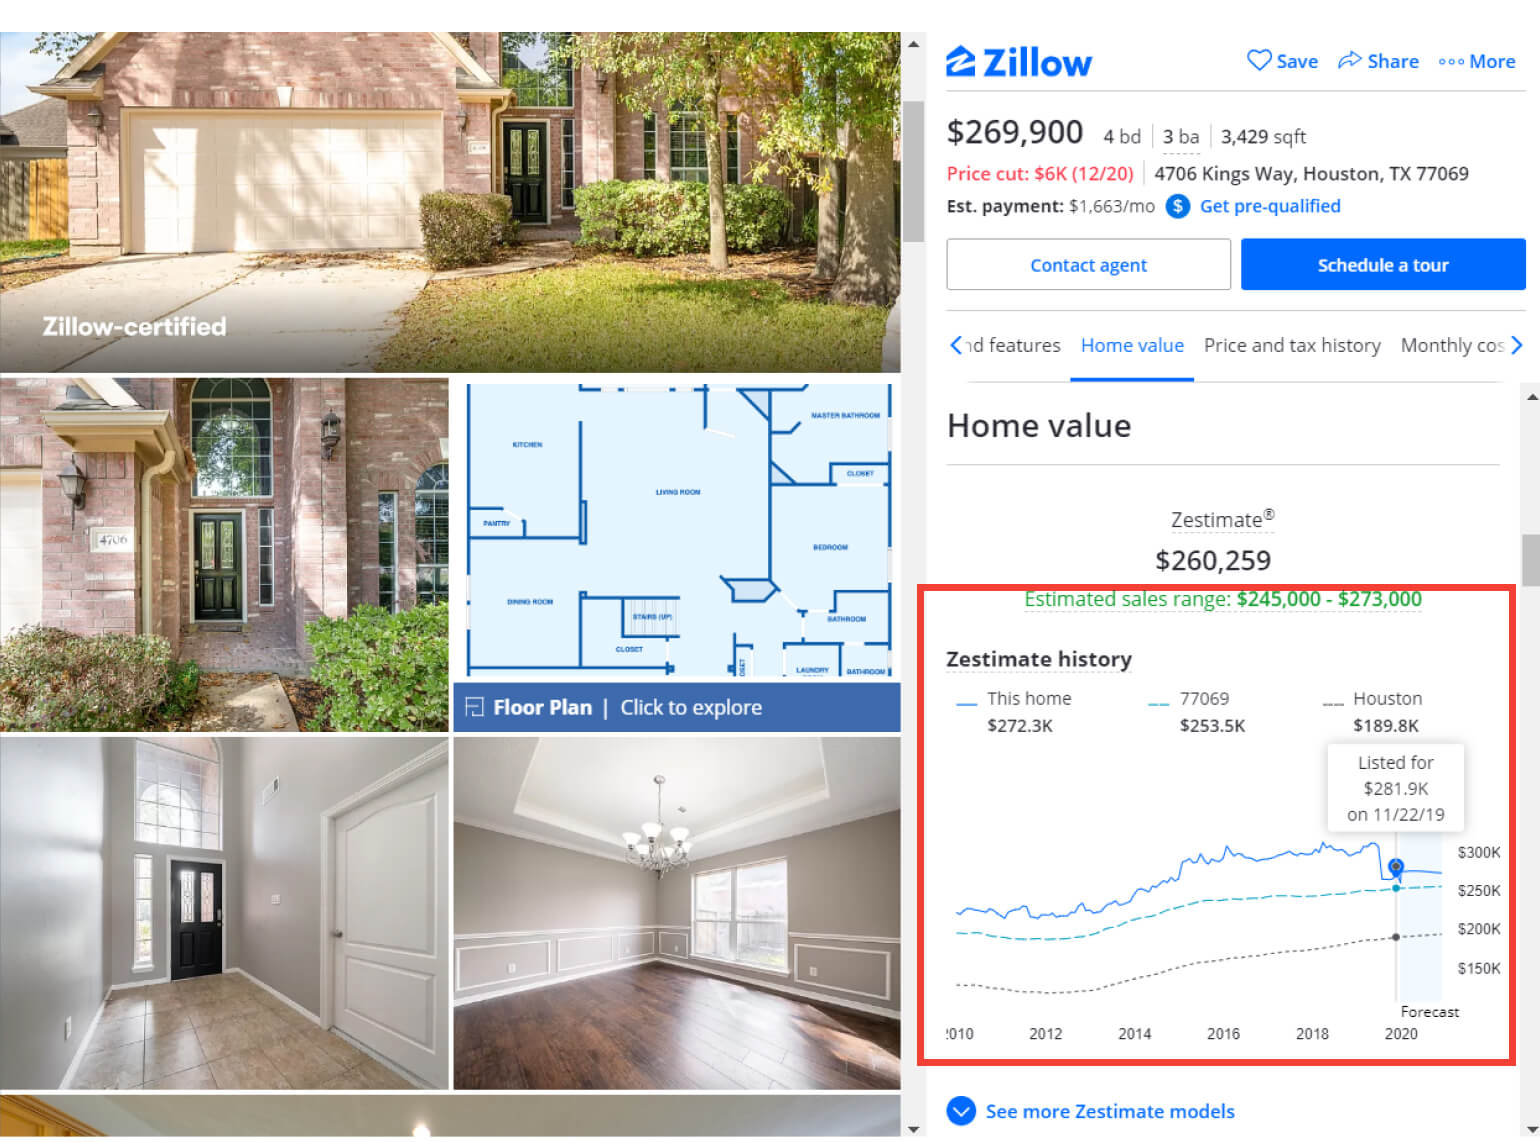 Proptech Giant Zillow Hits A Home Run With Their Excellent Performance -Body Image 3